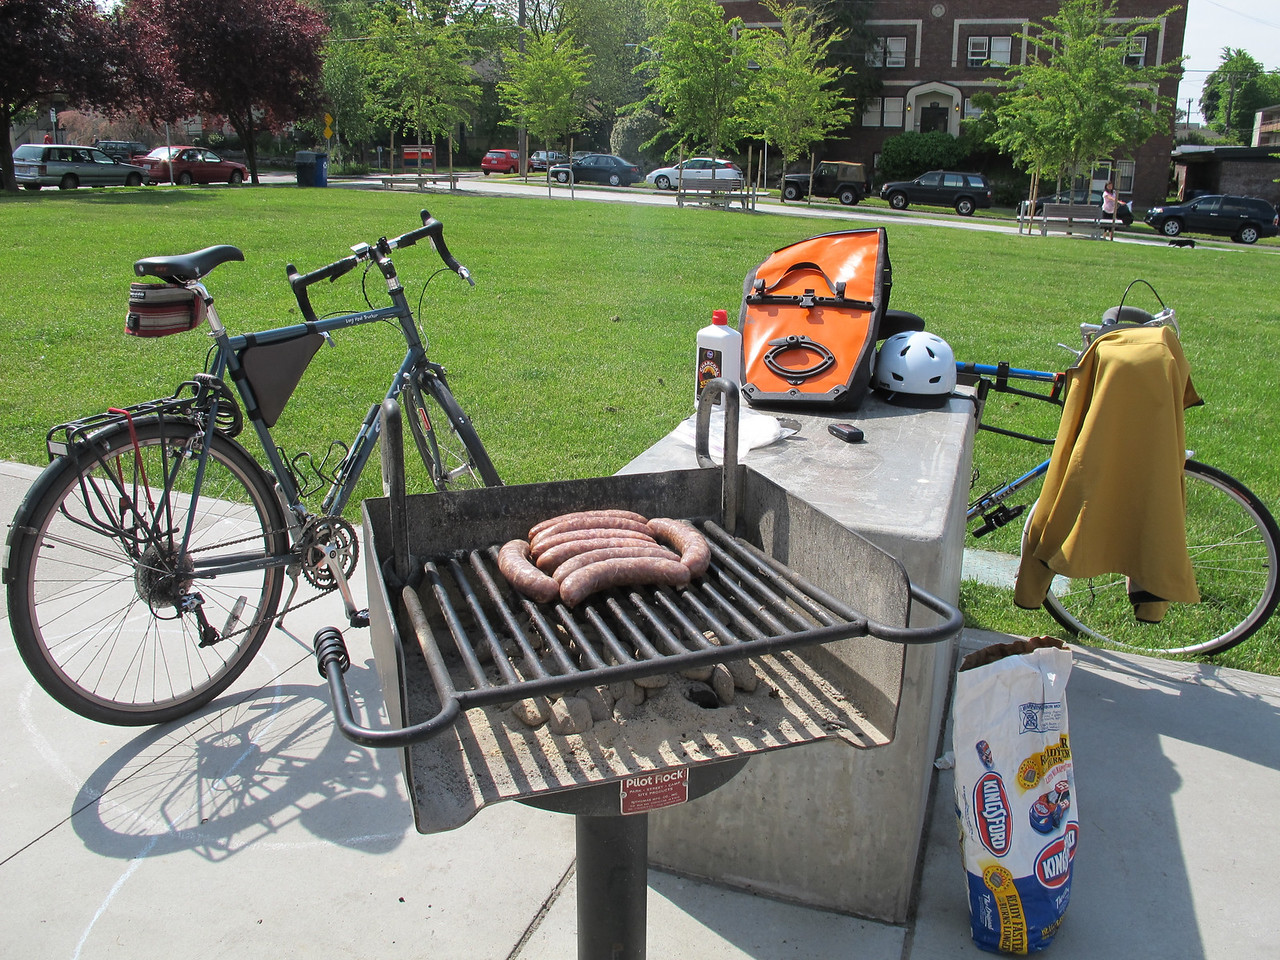 Sunday, June 12, 2011. We cycled to a close-by park and bbq'd boerewors for breakfast.